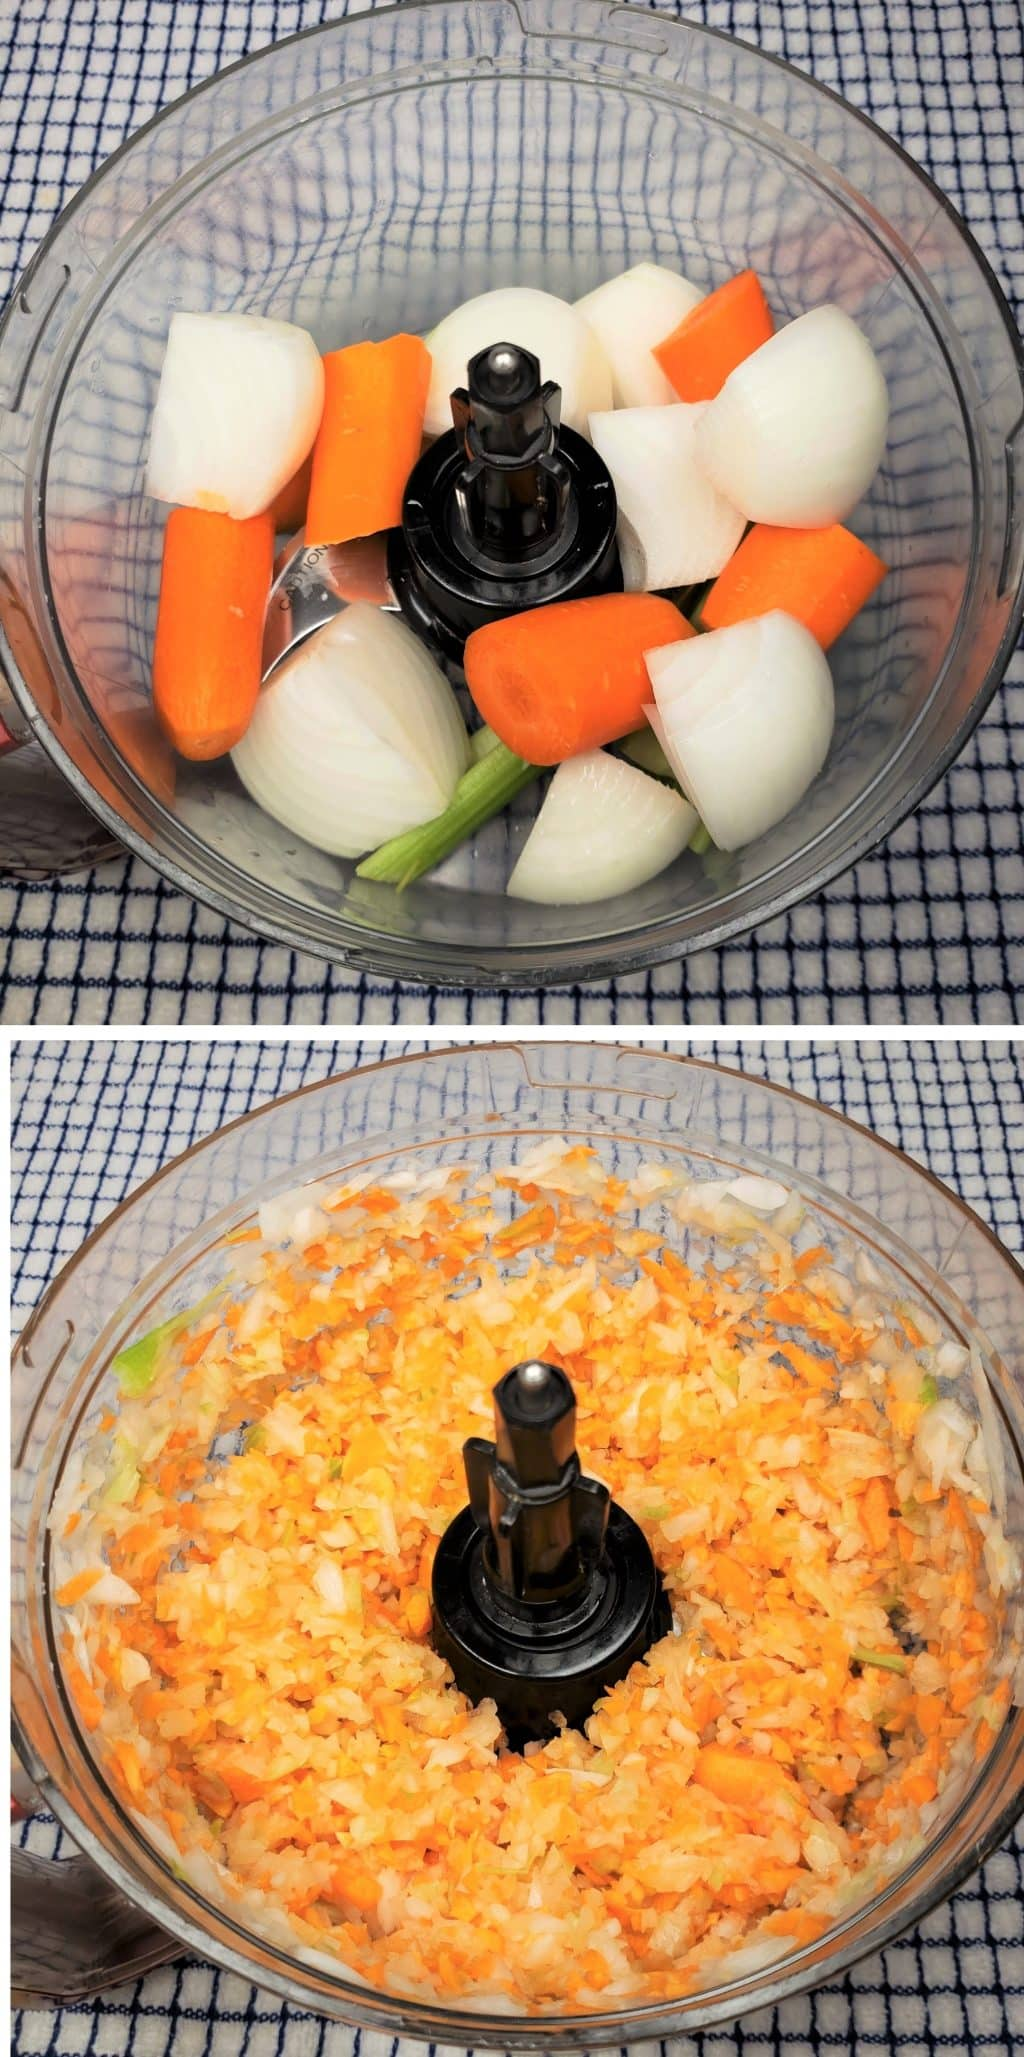 Carrots, Onions, Celery in Food Processor